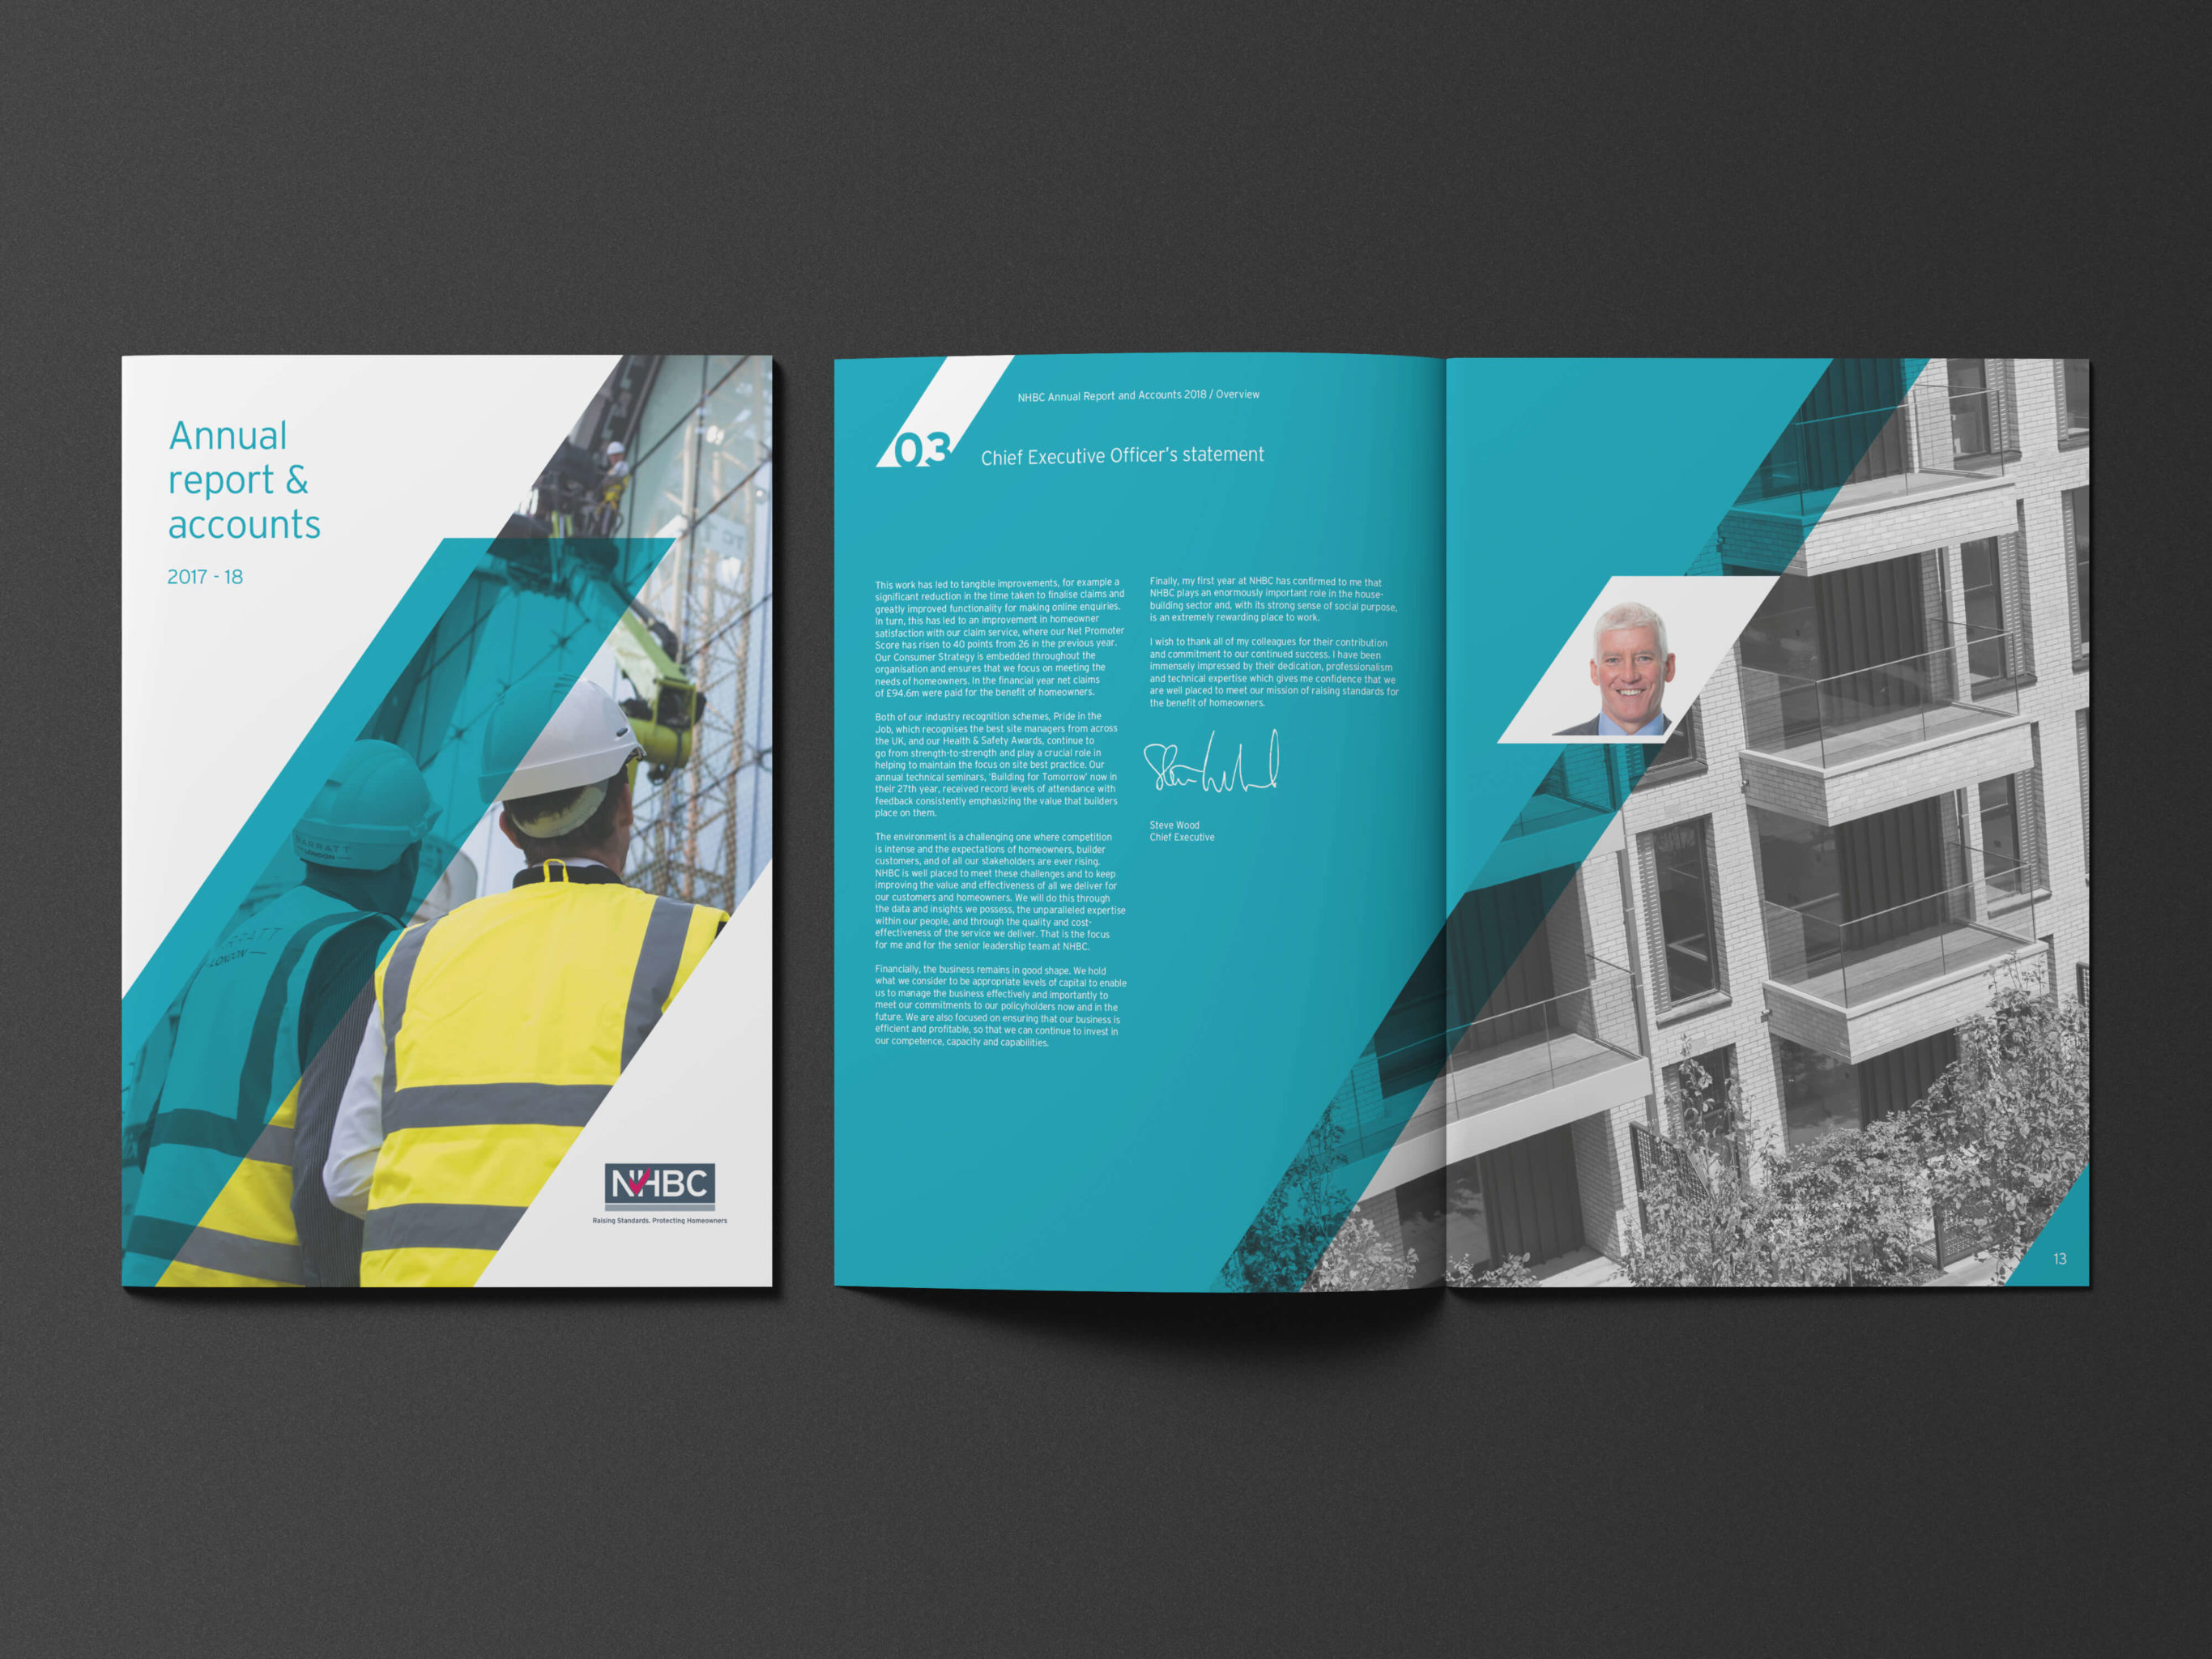 NHBC annual report